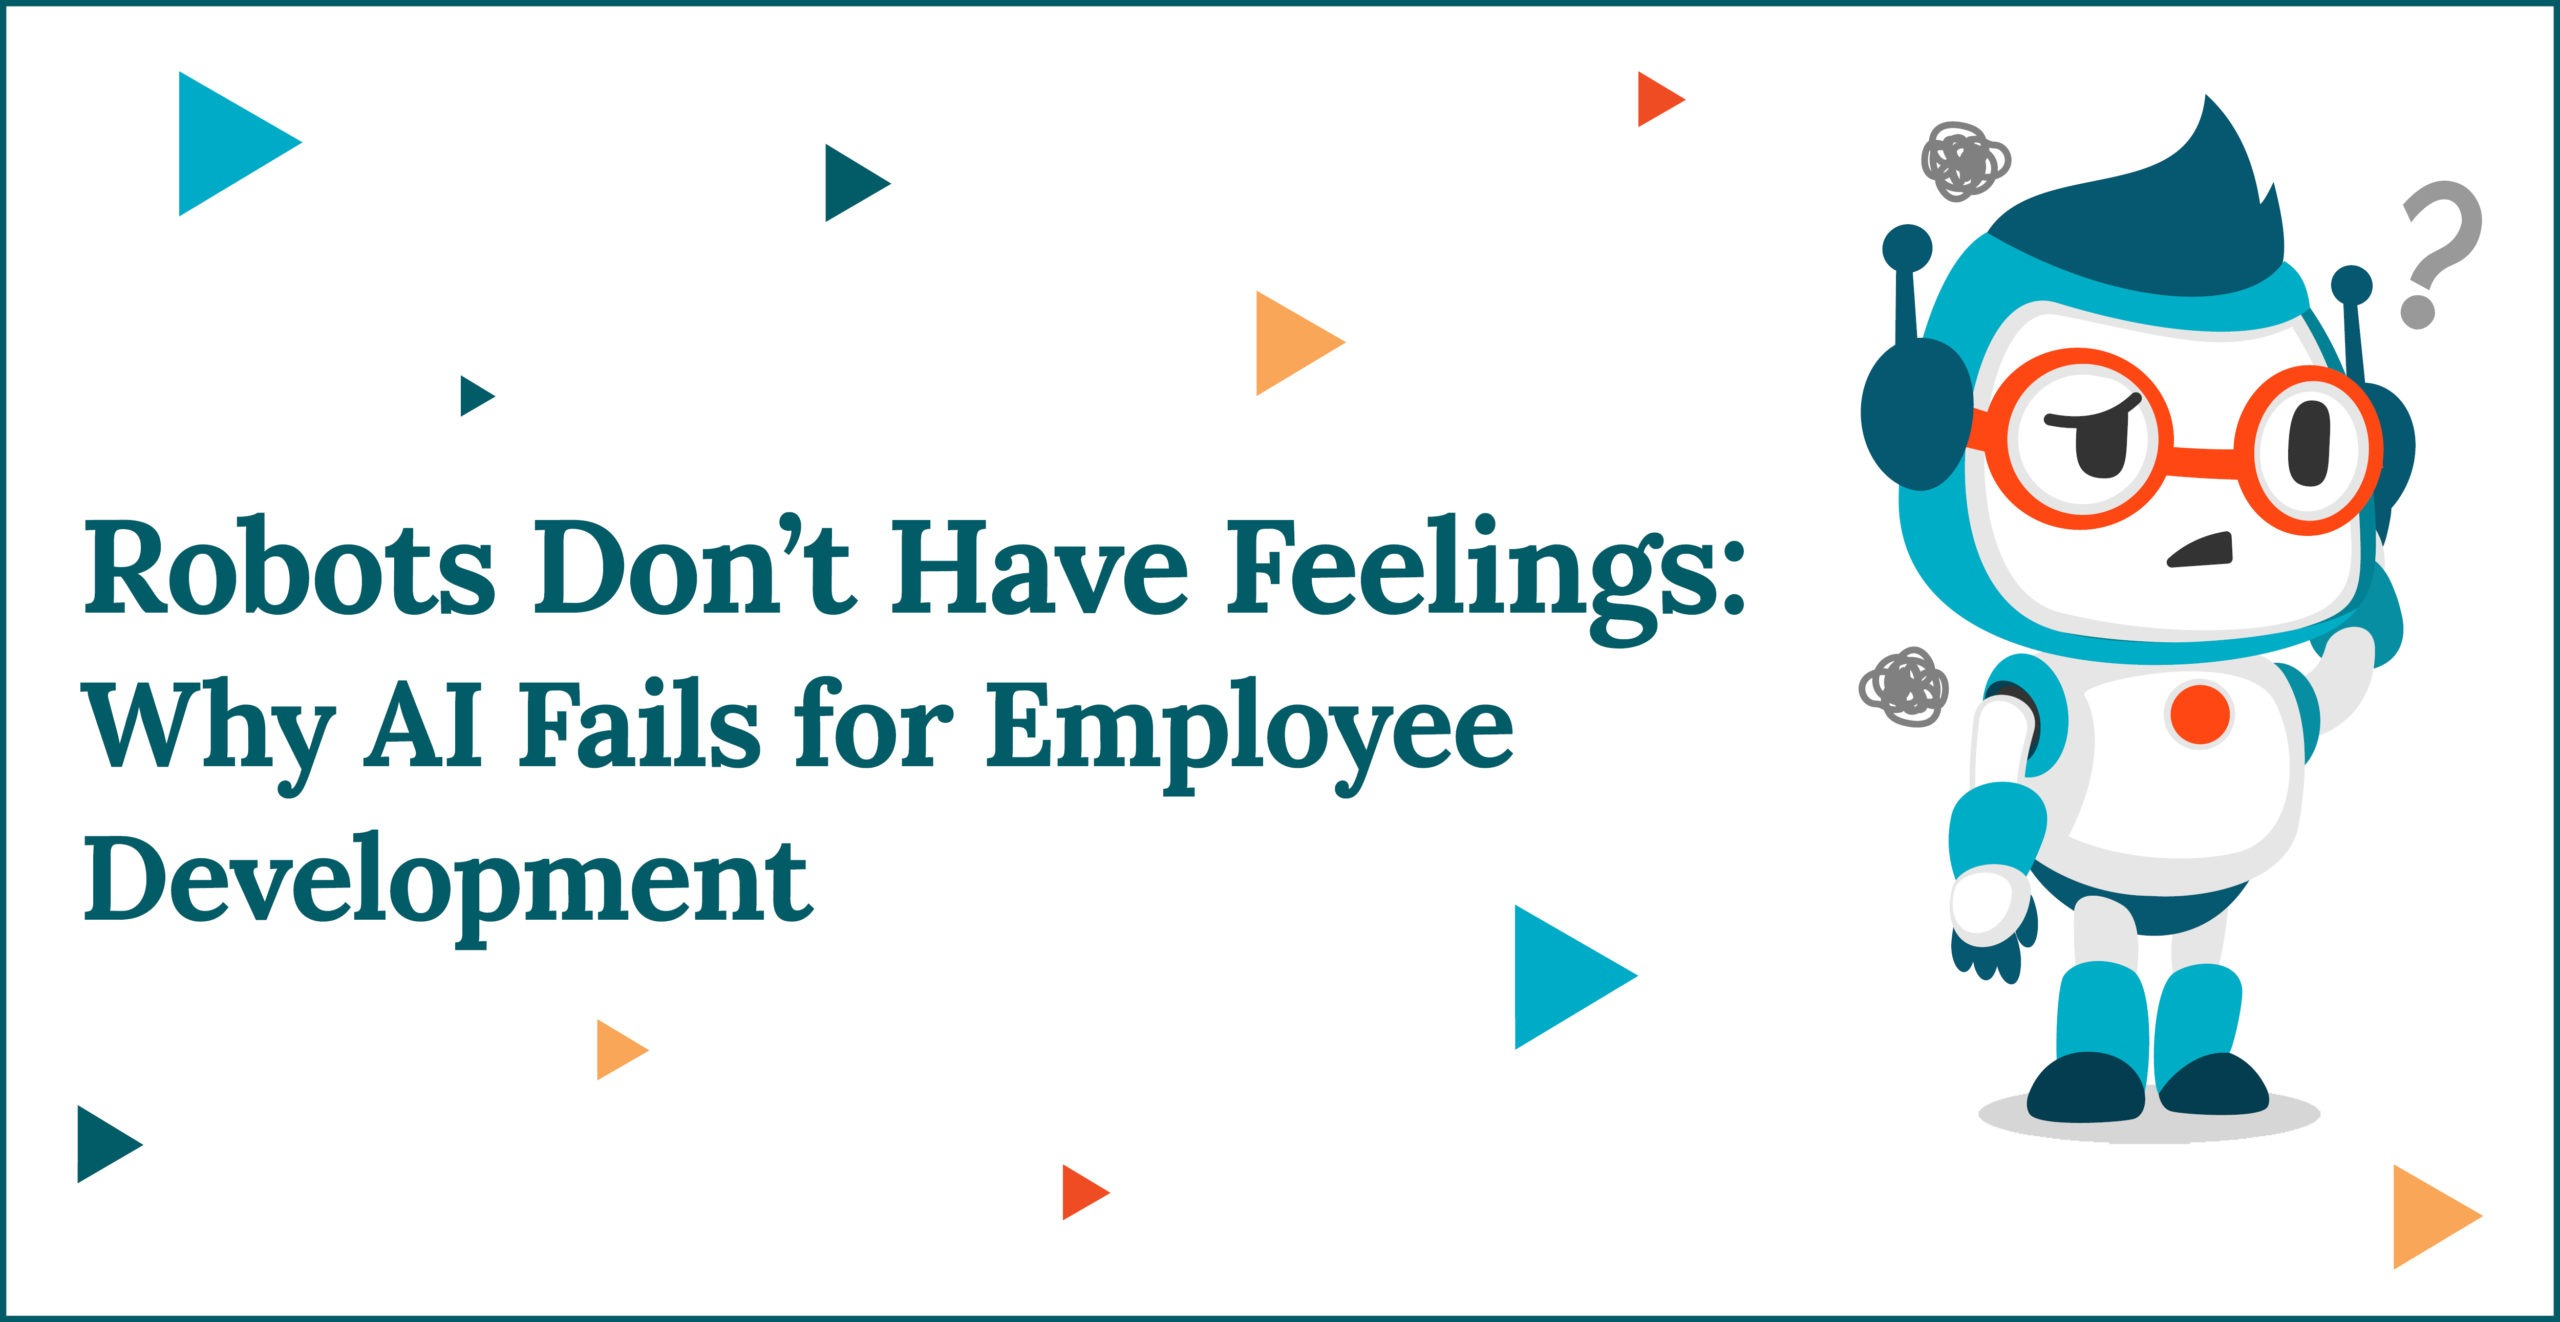 Robots Don't Have Feelings: Why AI Fails for Employee Development